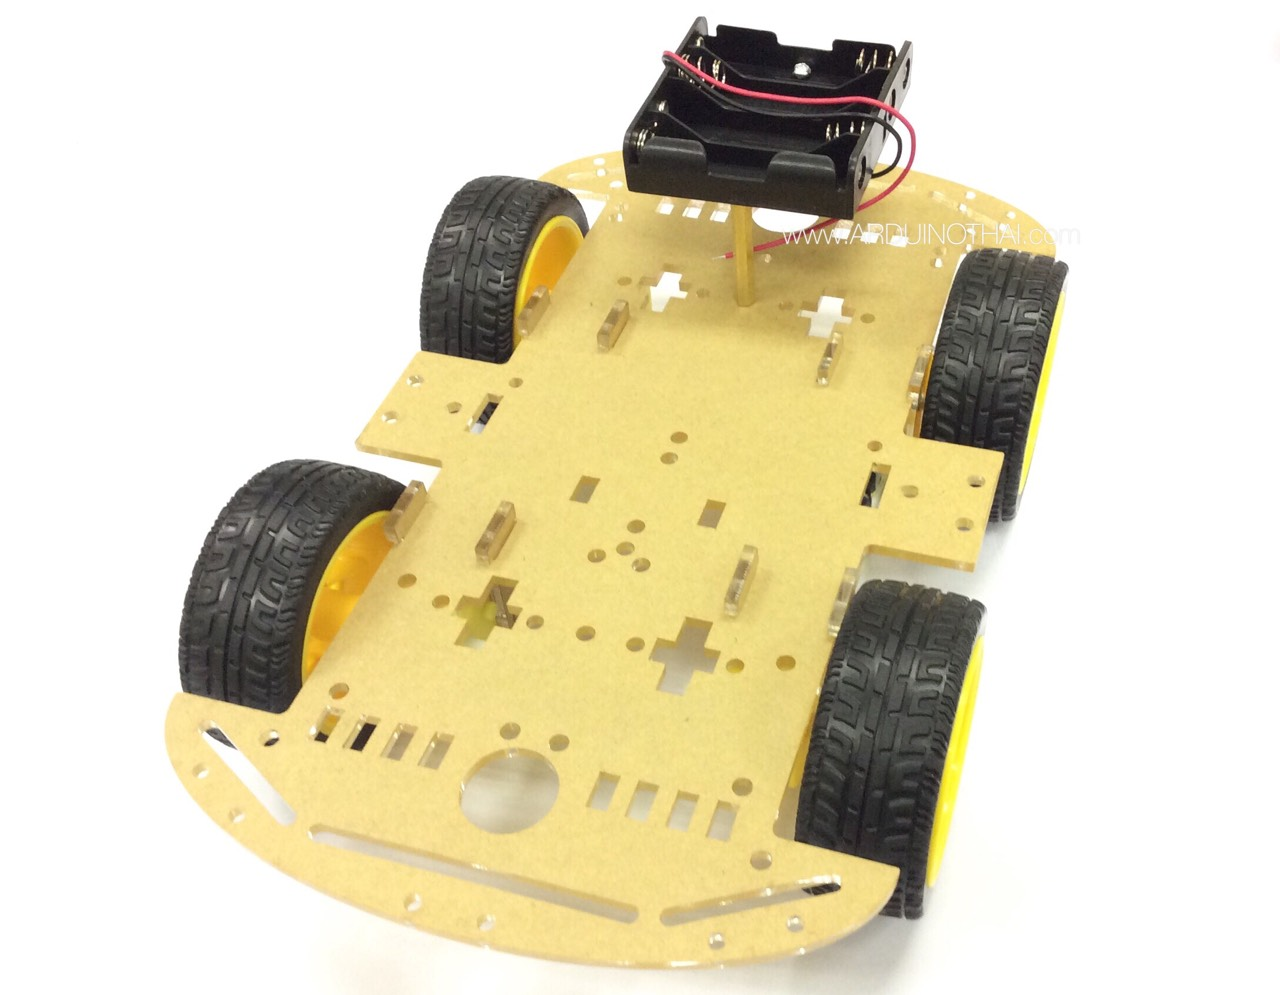 4WD smart car chassis